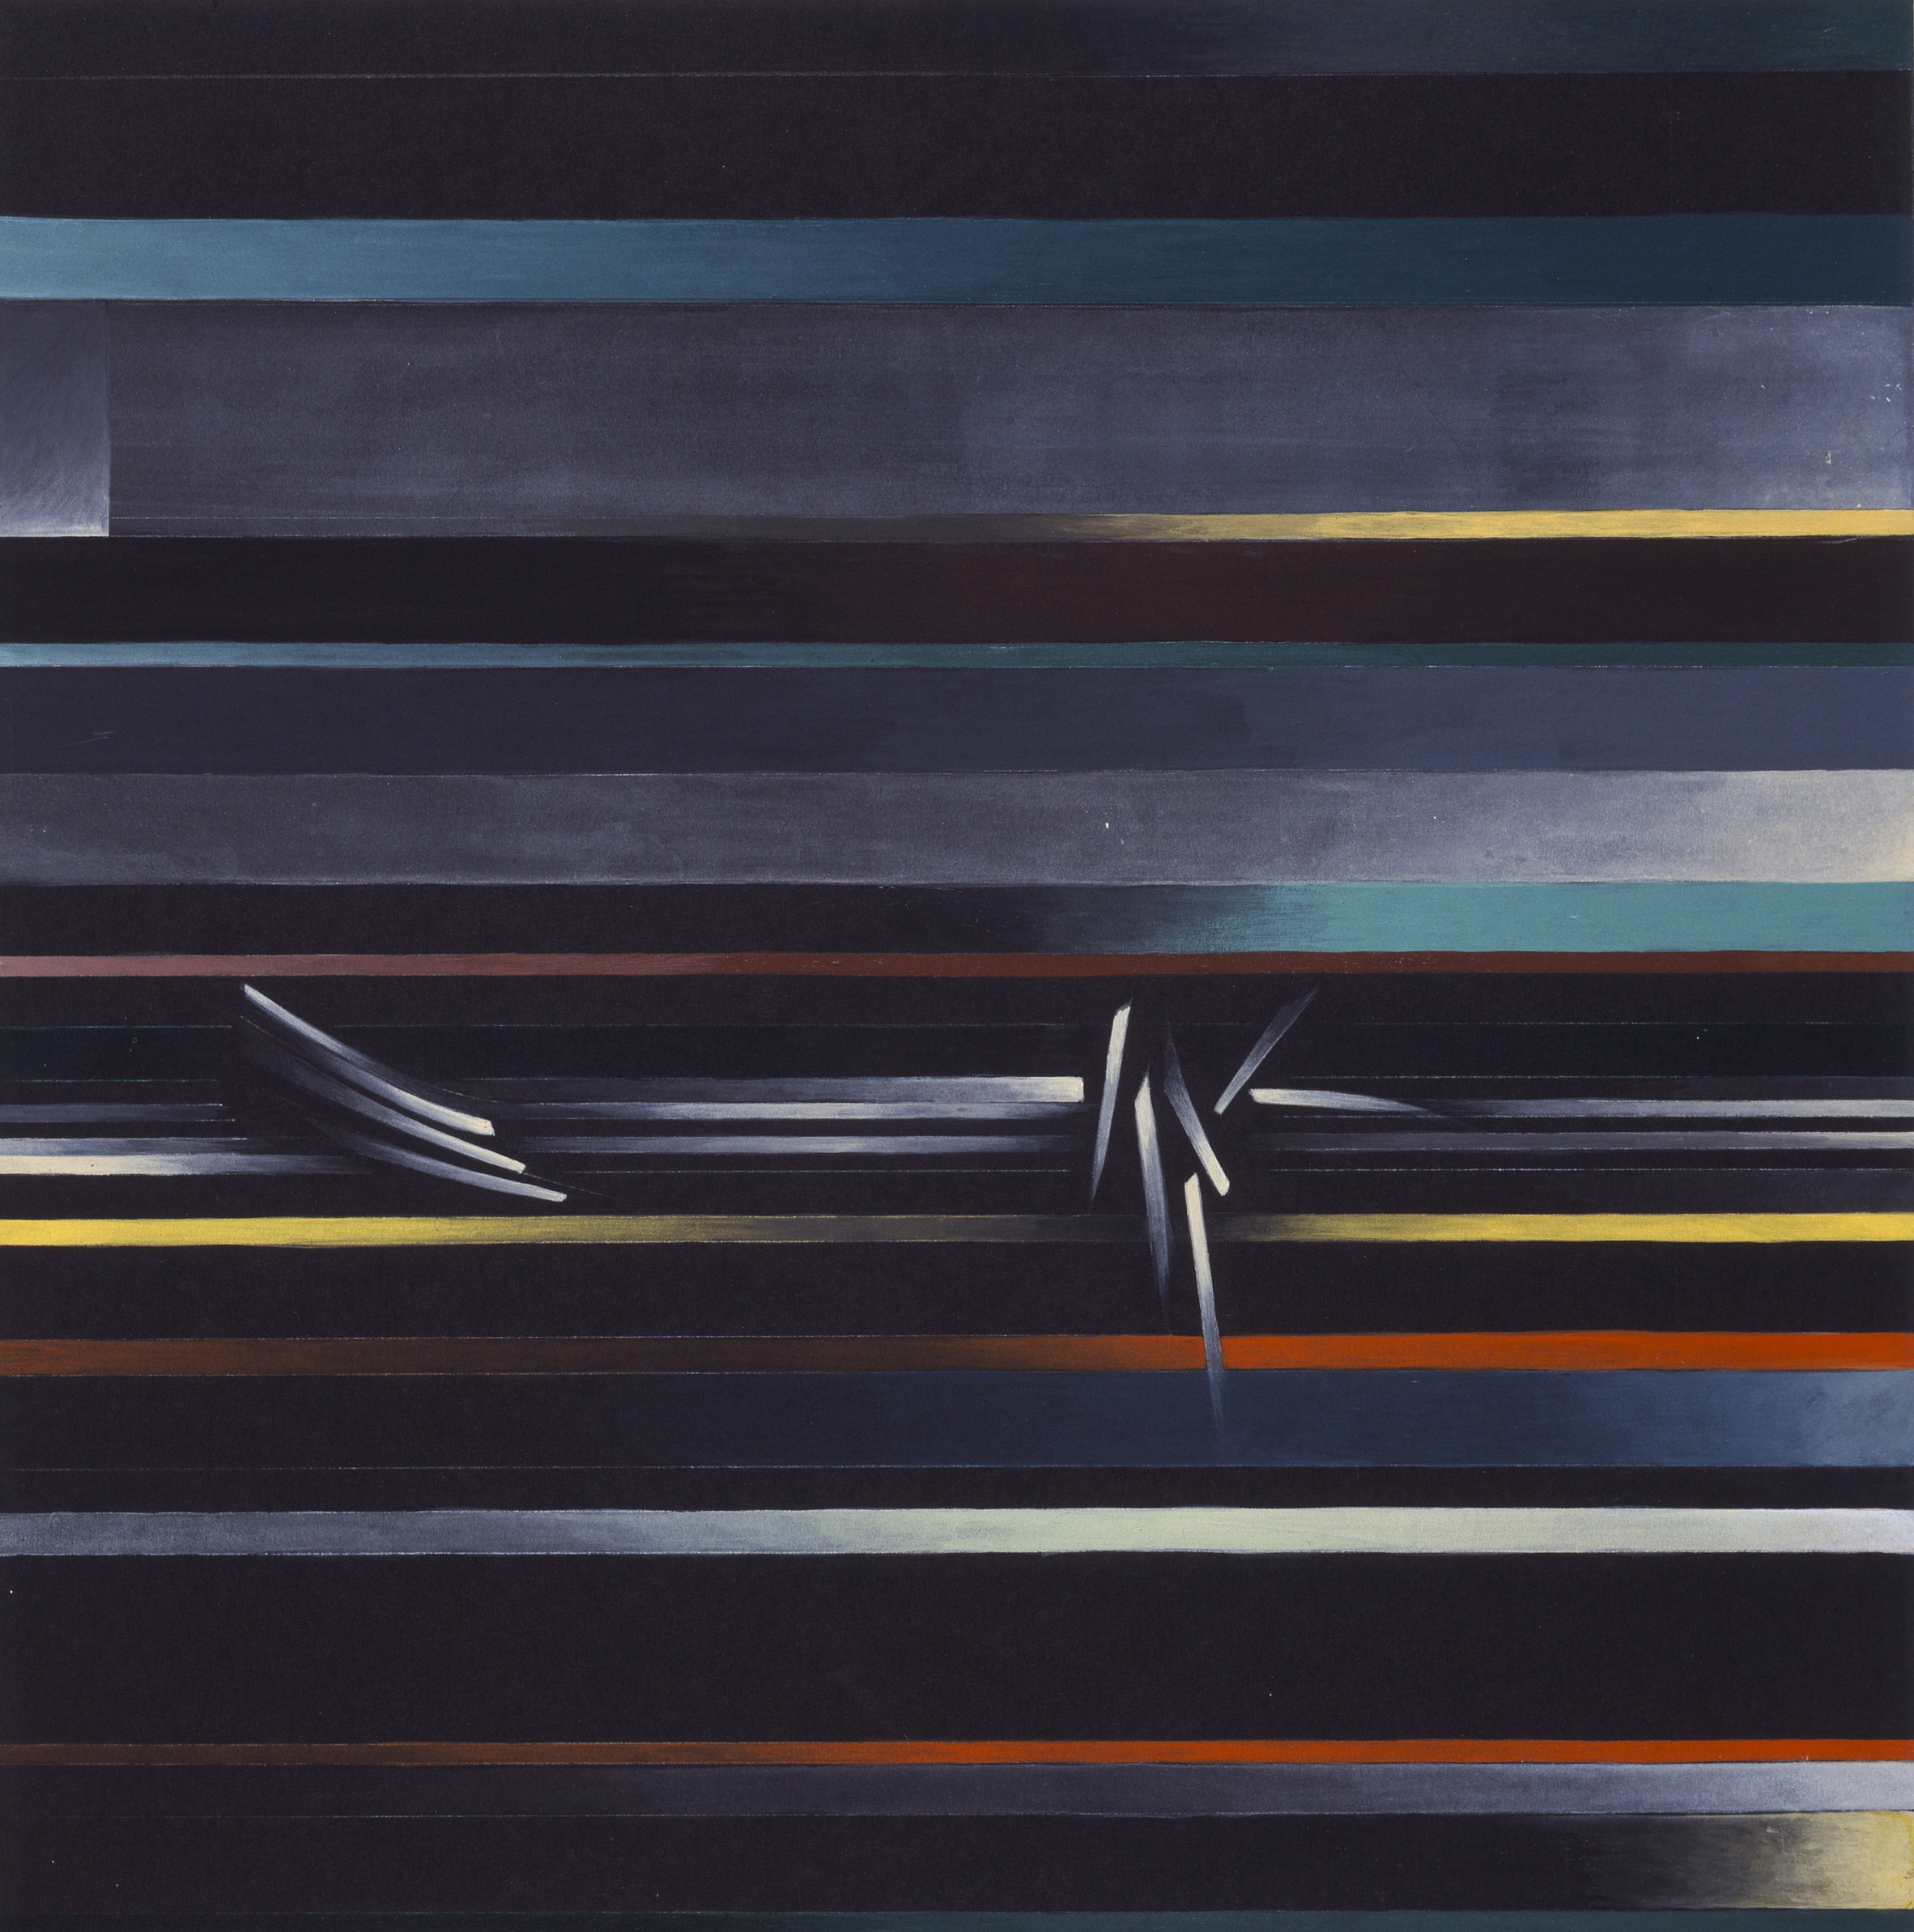 2 Zaha Hadid's early paintings to go on show at Serpentine Sackler Gallery Serpentine Sackler Gallery Zaha Hadid's early paintings at Serpentine Sackler Gallery 2